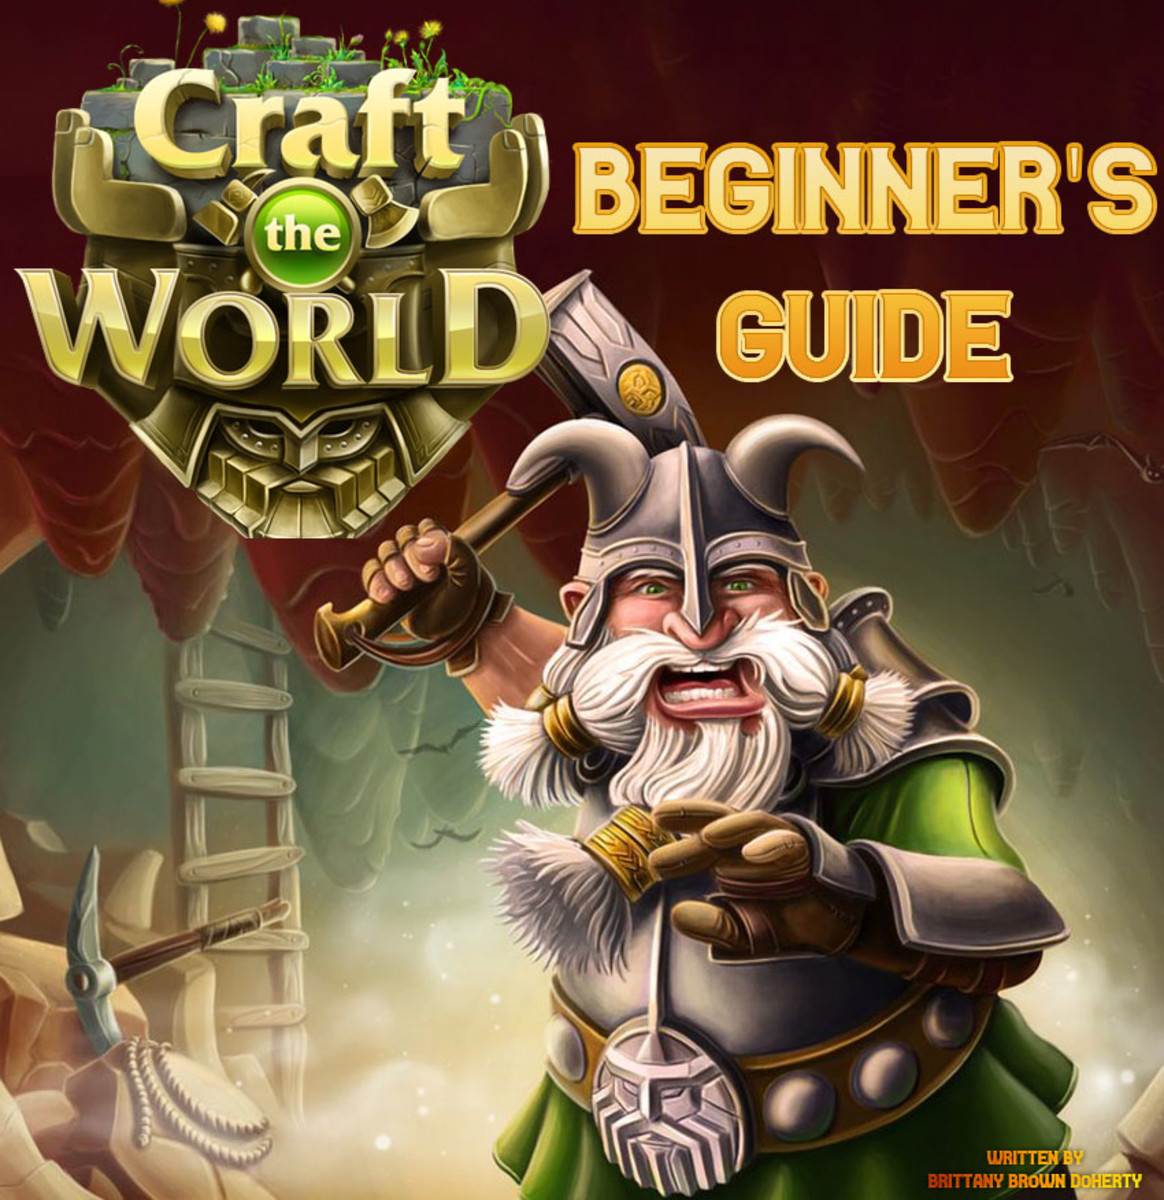 """Craft the World"" Beginner's Guide: How to Build a Shelter, Use Magic Spells, and Other Helpful Tips!"